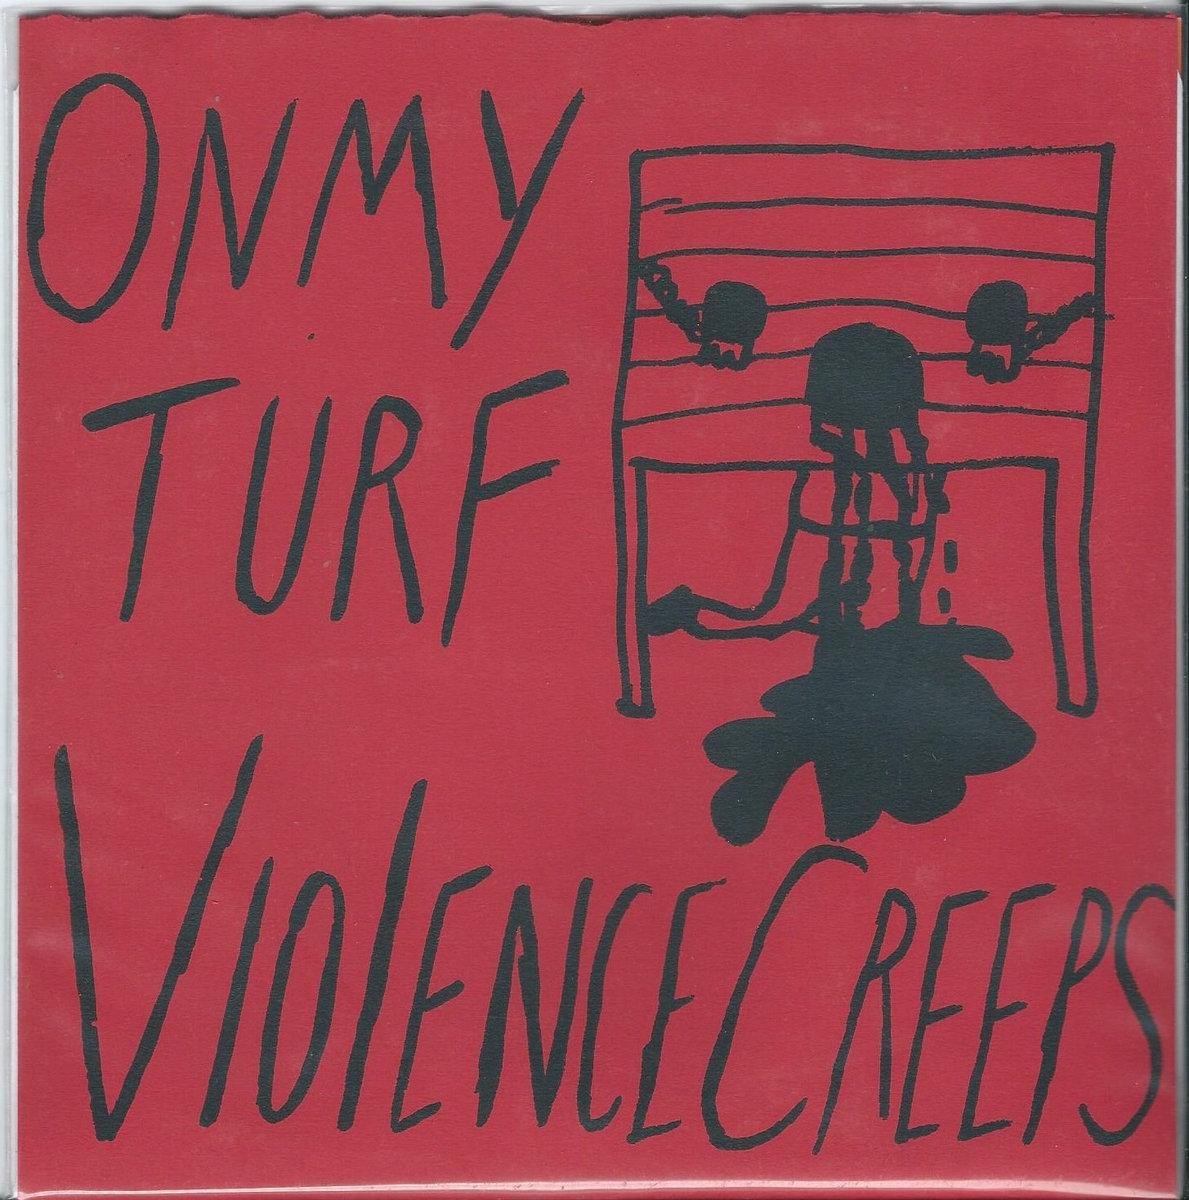 Record(s) of the Week: Violence Creeps